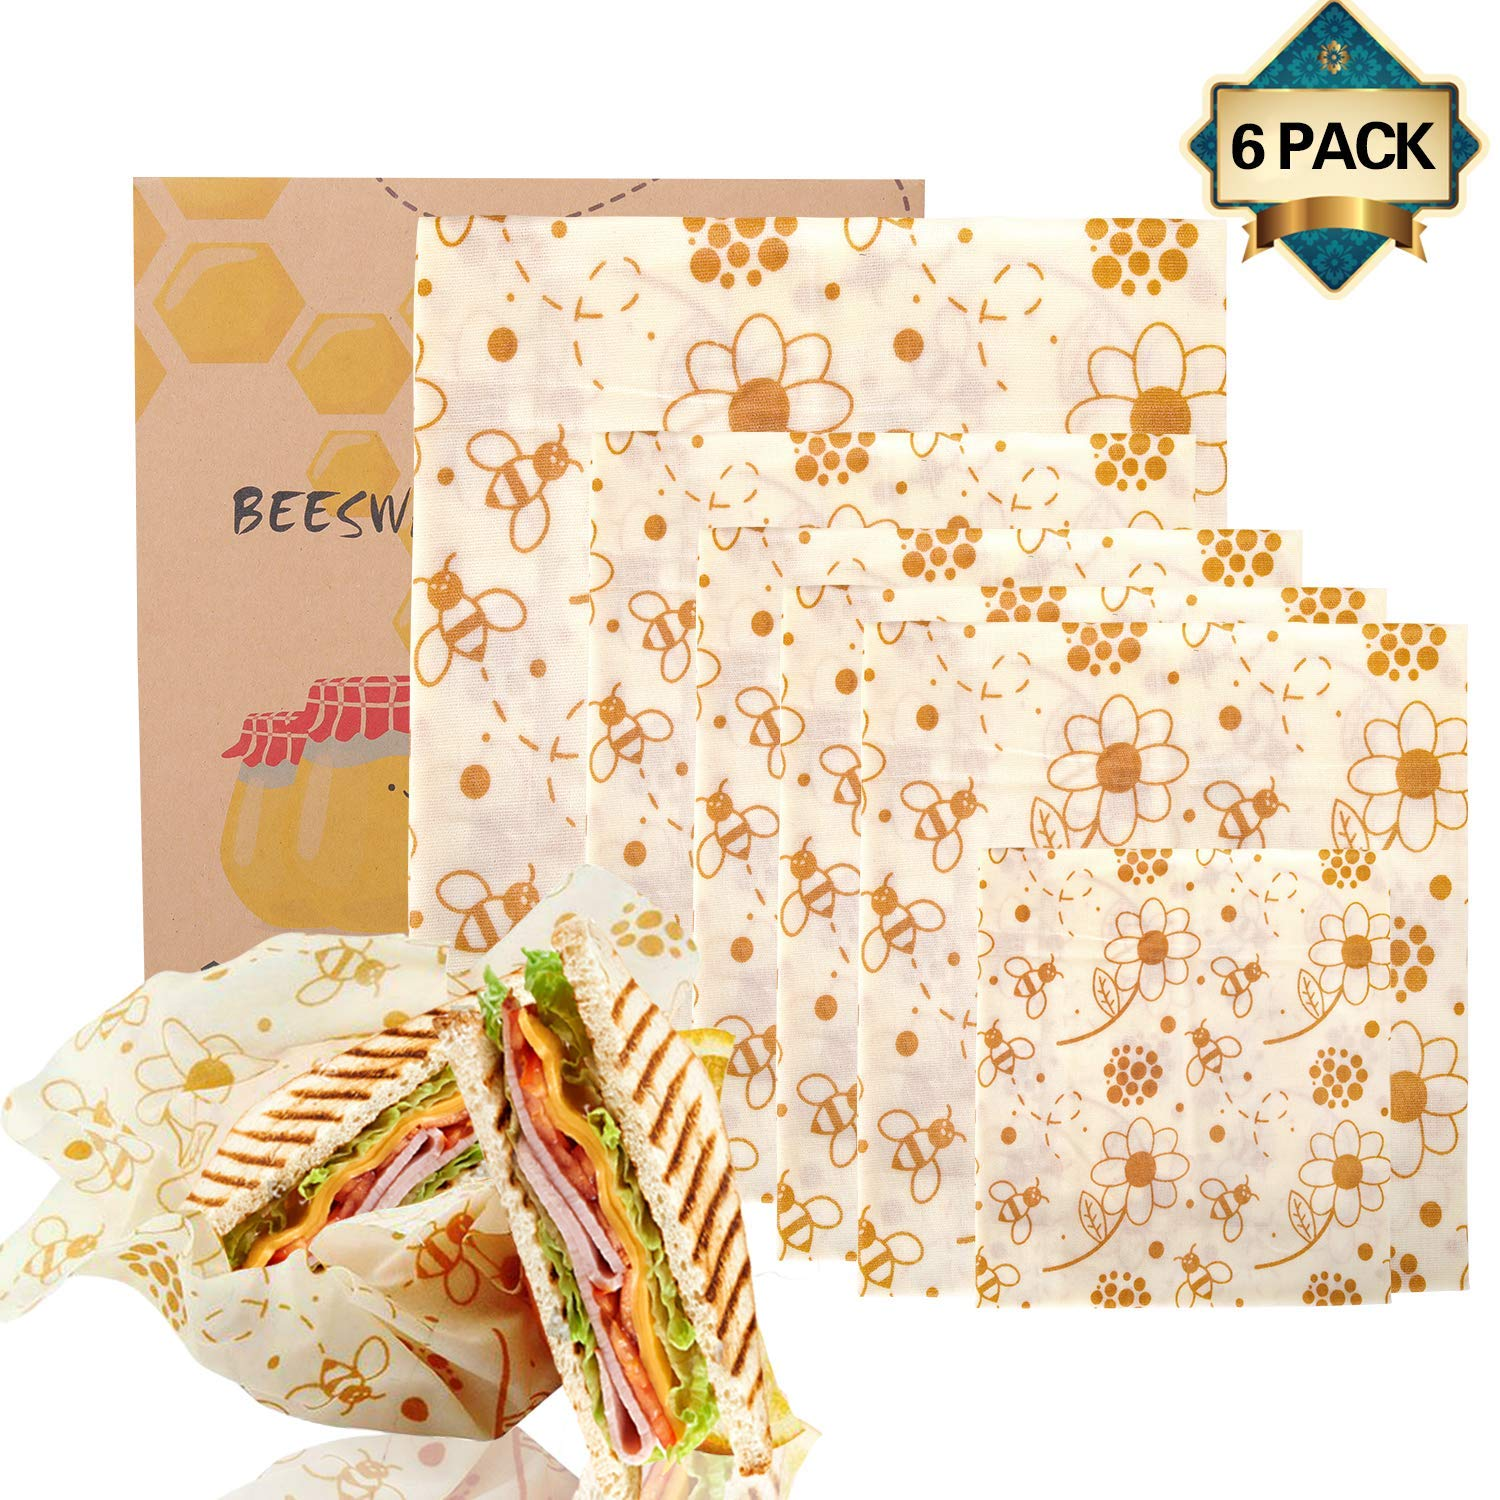 6 Pack Beeswax Wrap Reusable Food Wraps, Sustainable Plastic Free Food Storage, Eco Friendly Food Wraps - 1 Small, 4 Medium, 1 Large by Zmoon